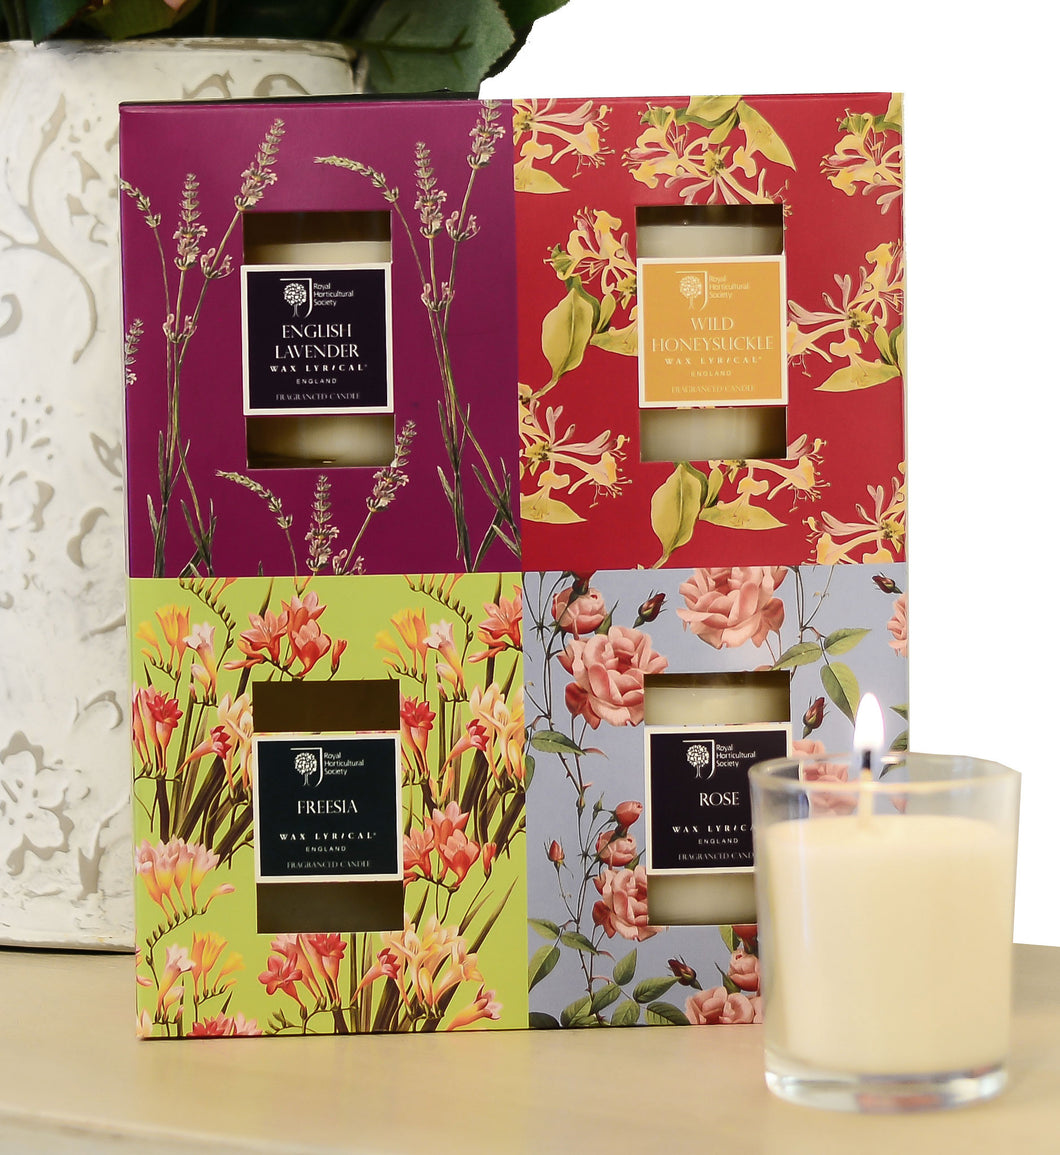 Wax Lyrical RHS Fragrant Garden 4 Candle Gift Set Assorted Votives - LAST FEW AVAILABLE!